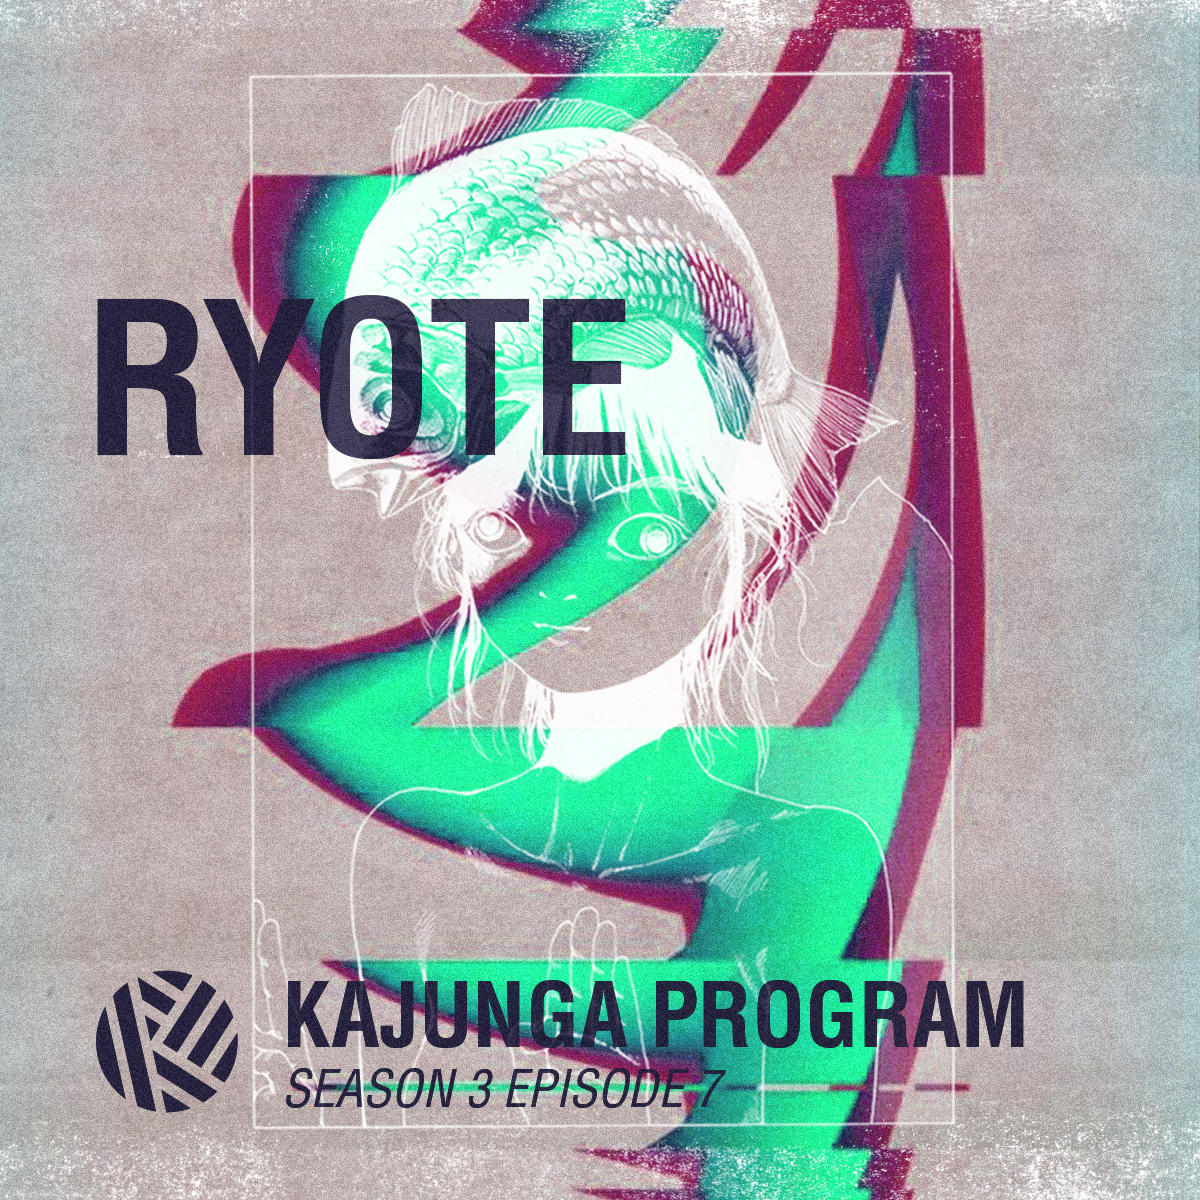 Kajunga_Podcast_Mix_Artwork_Ryote_II.jpg